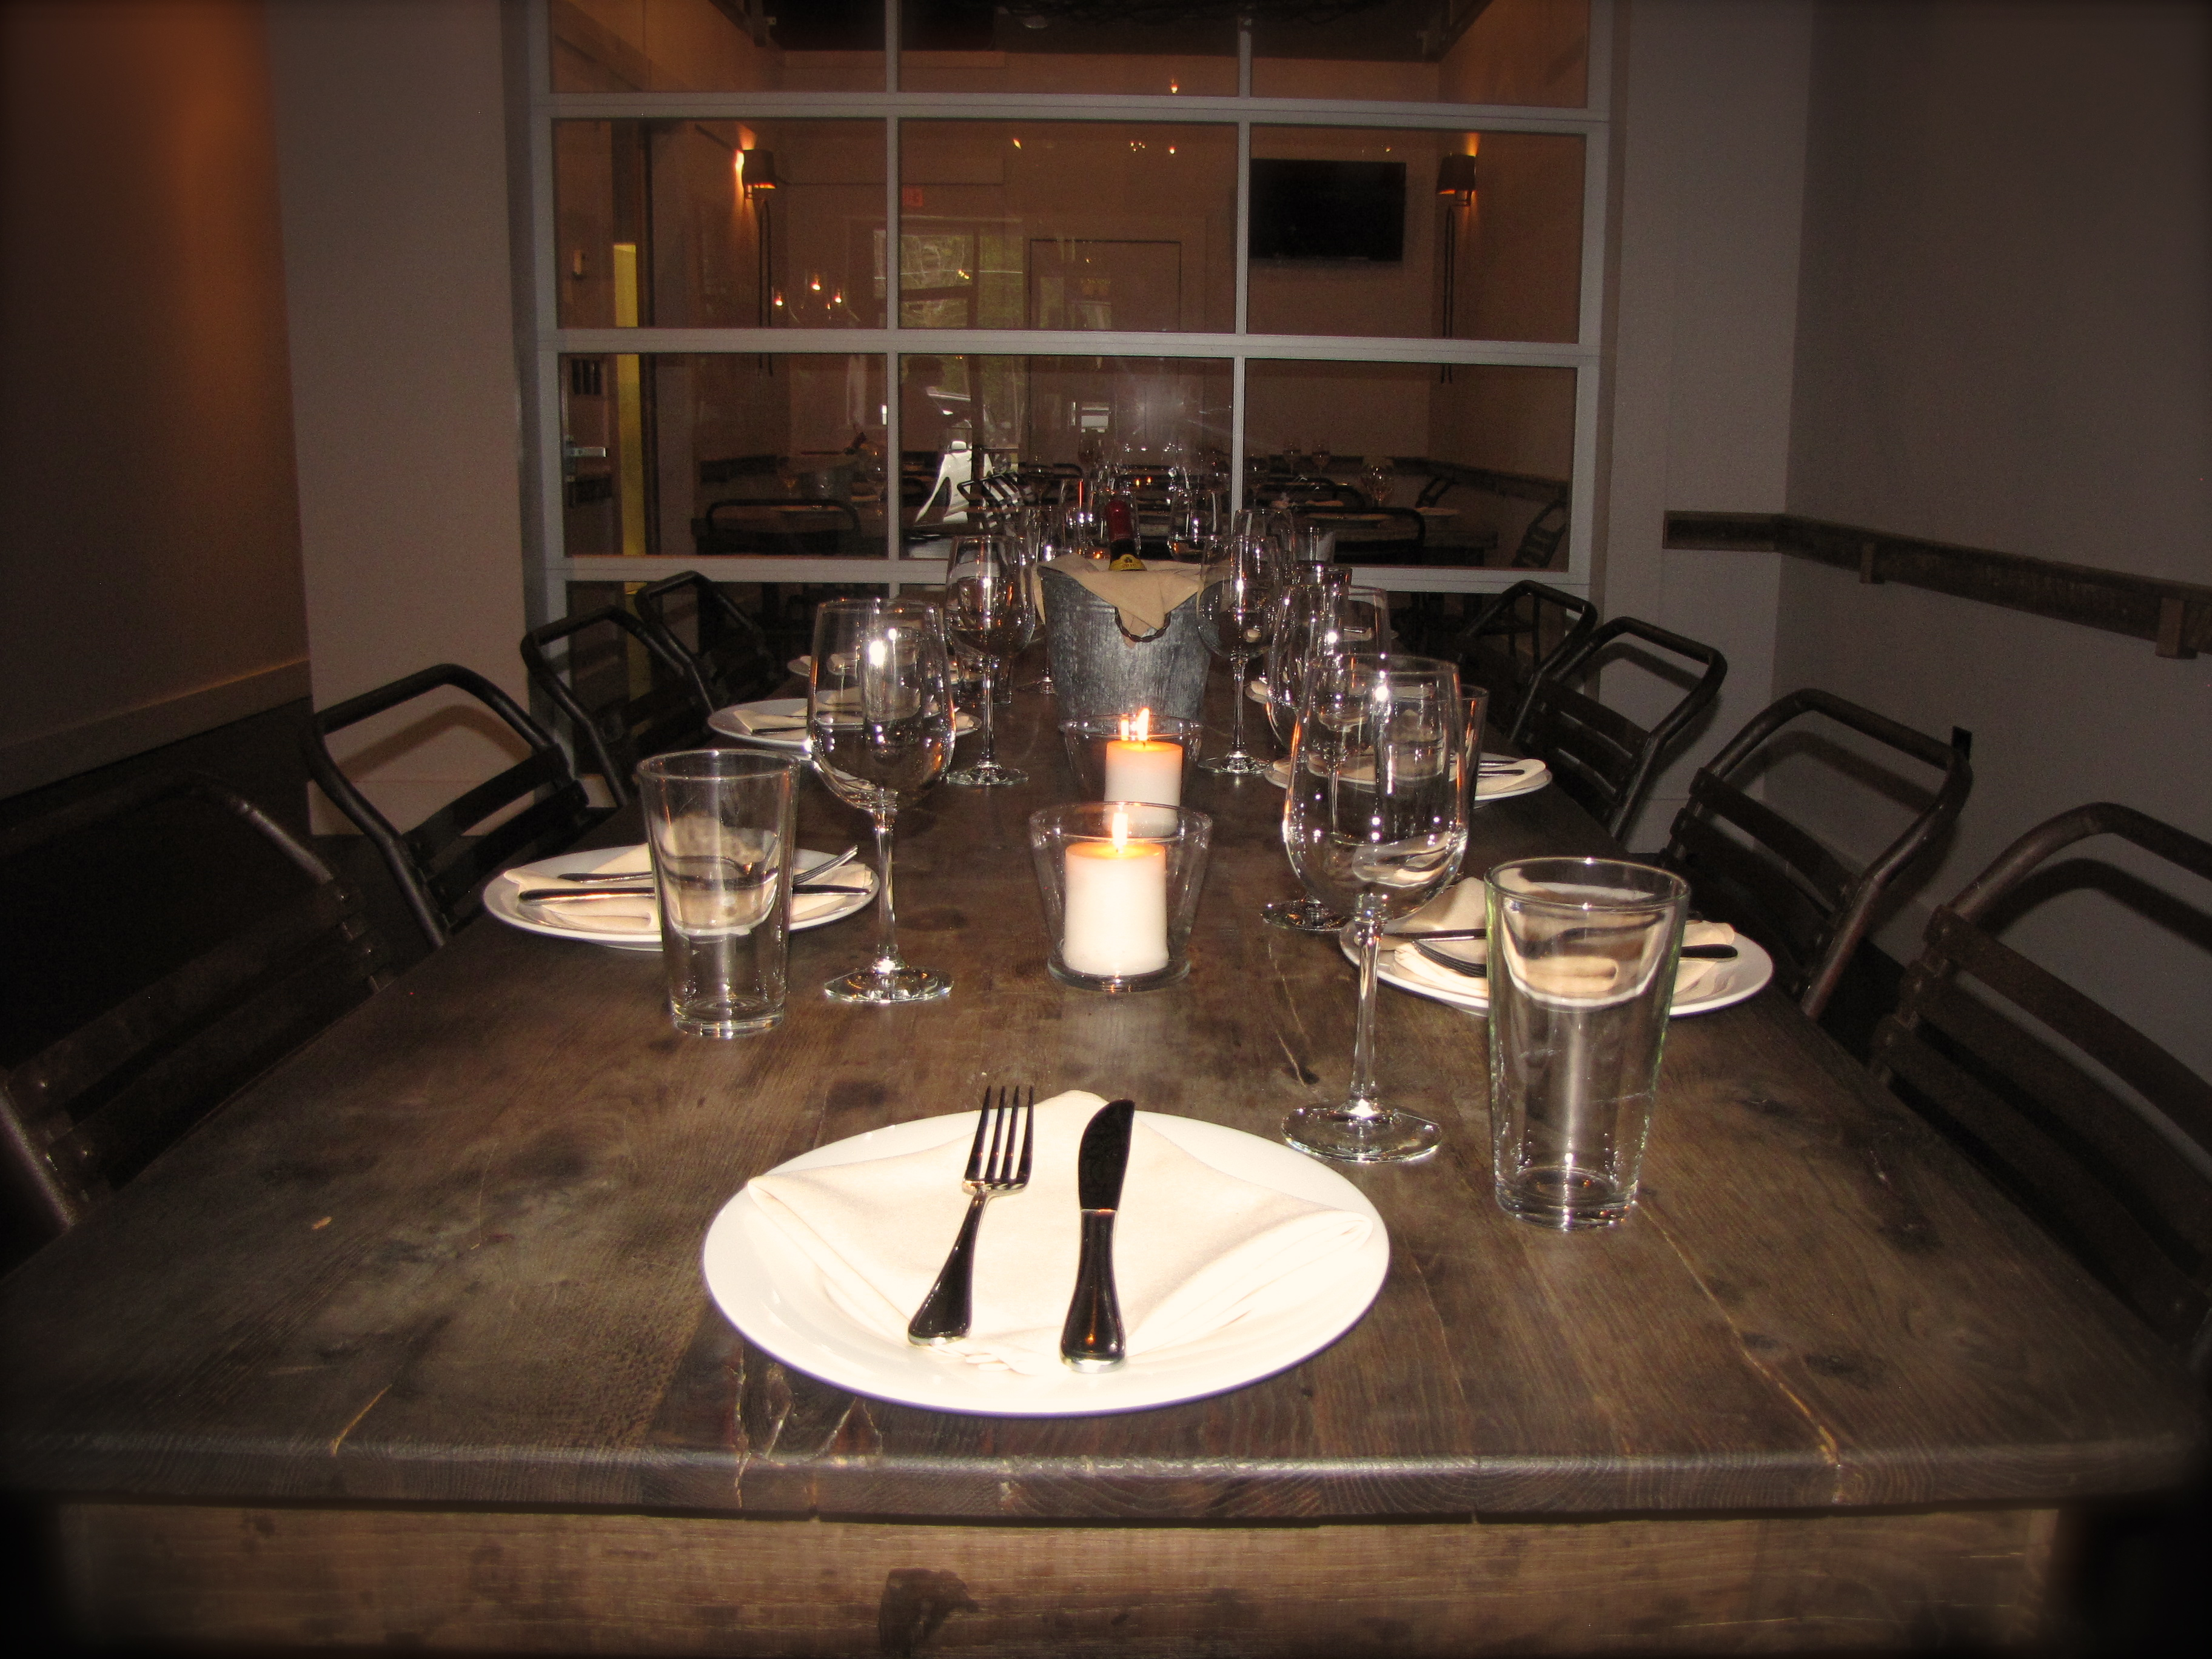 Our Beautiful Chef's Table